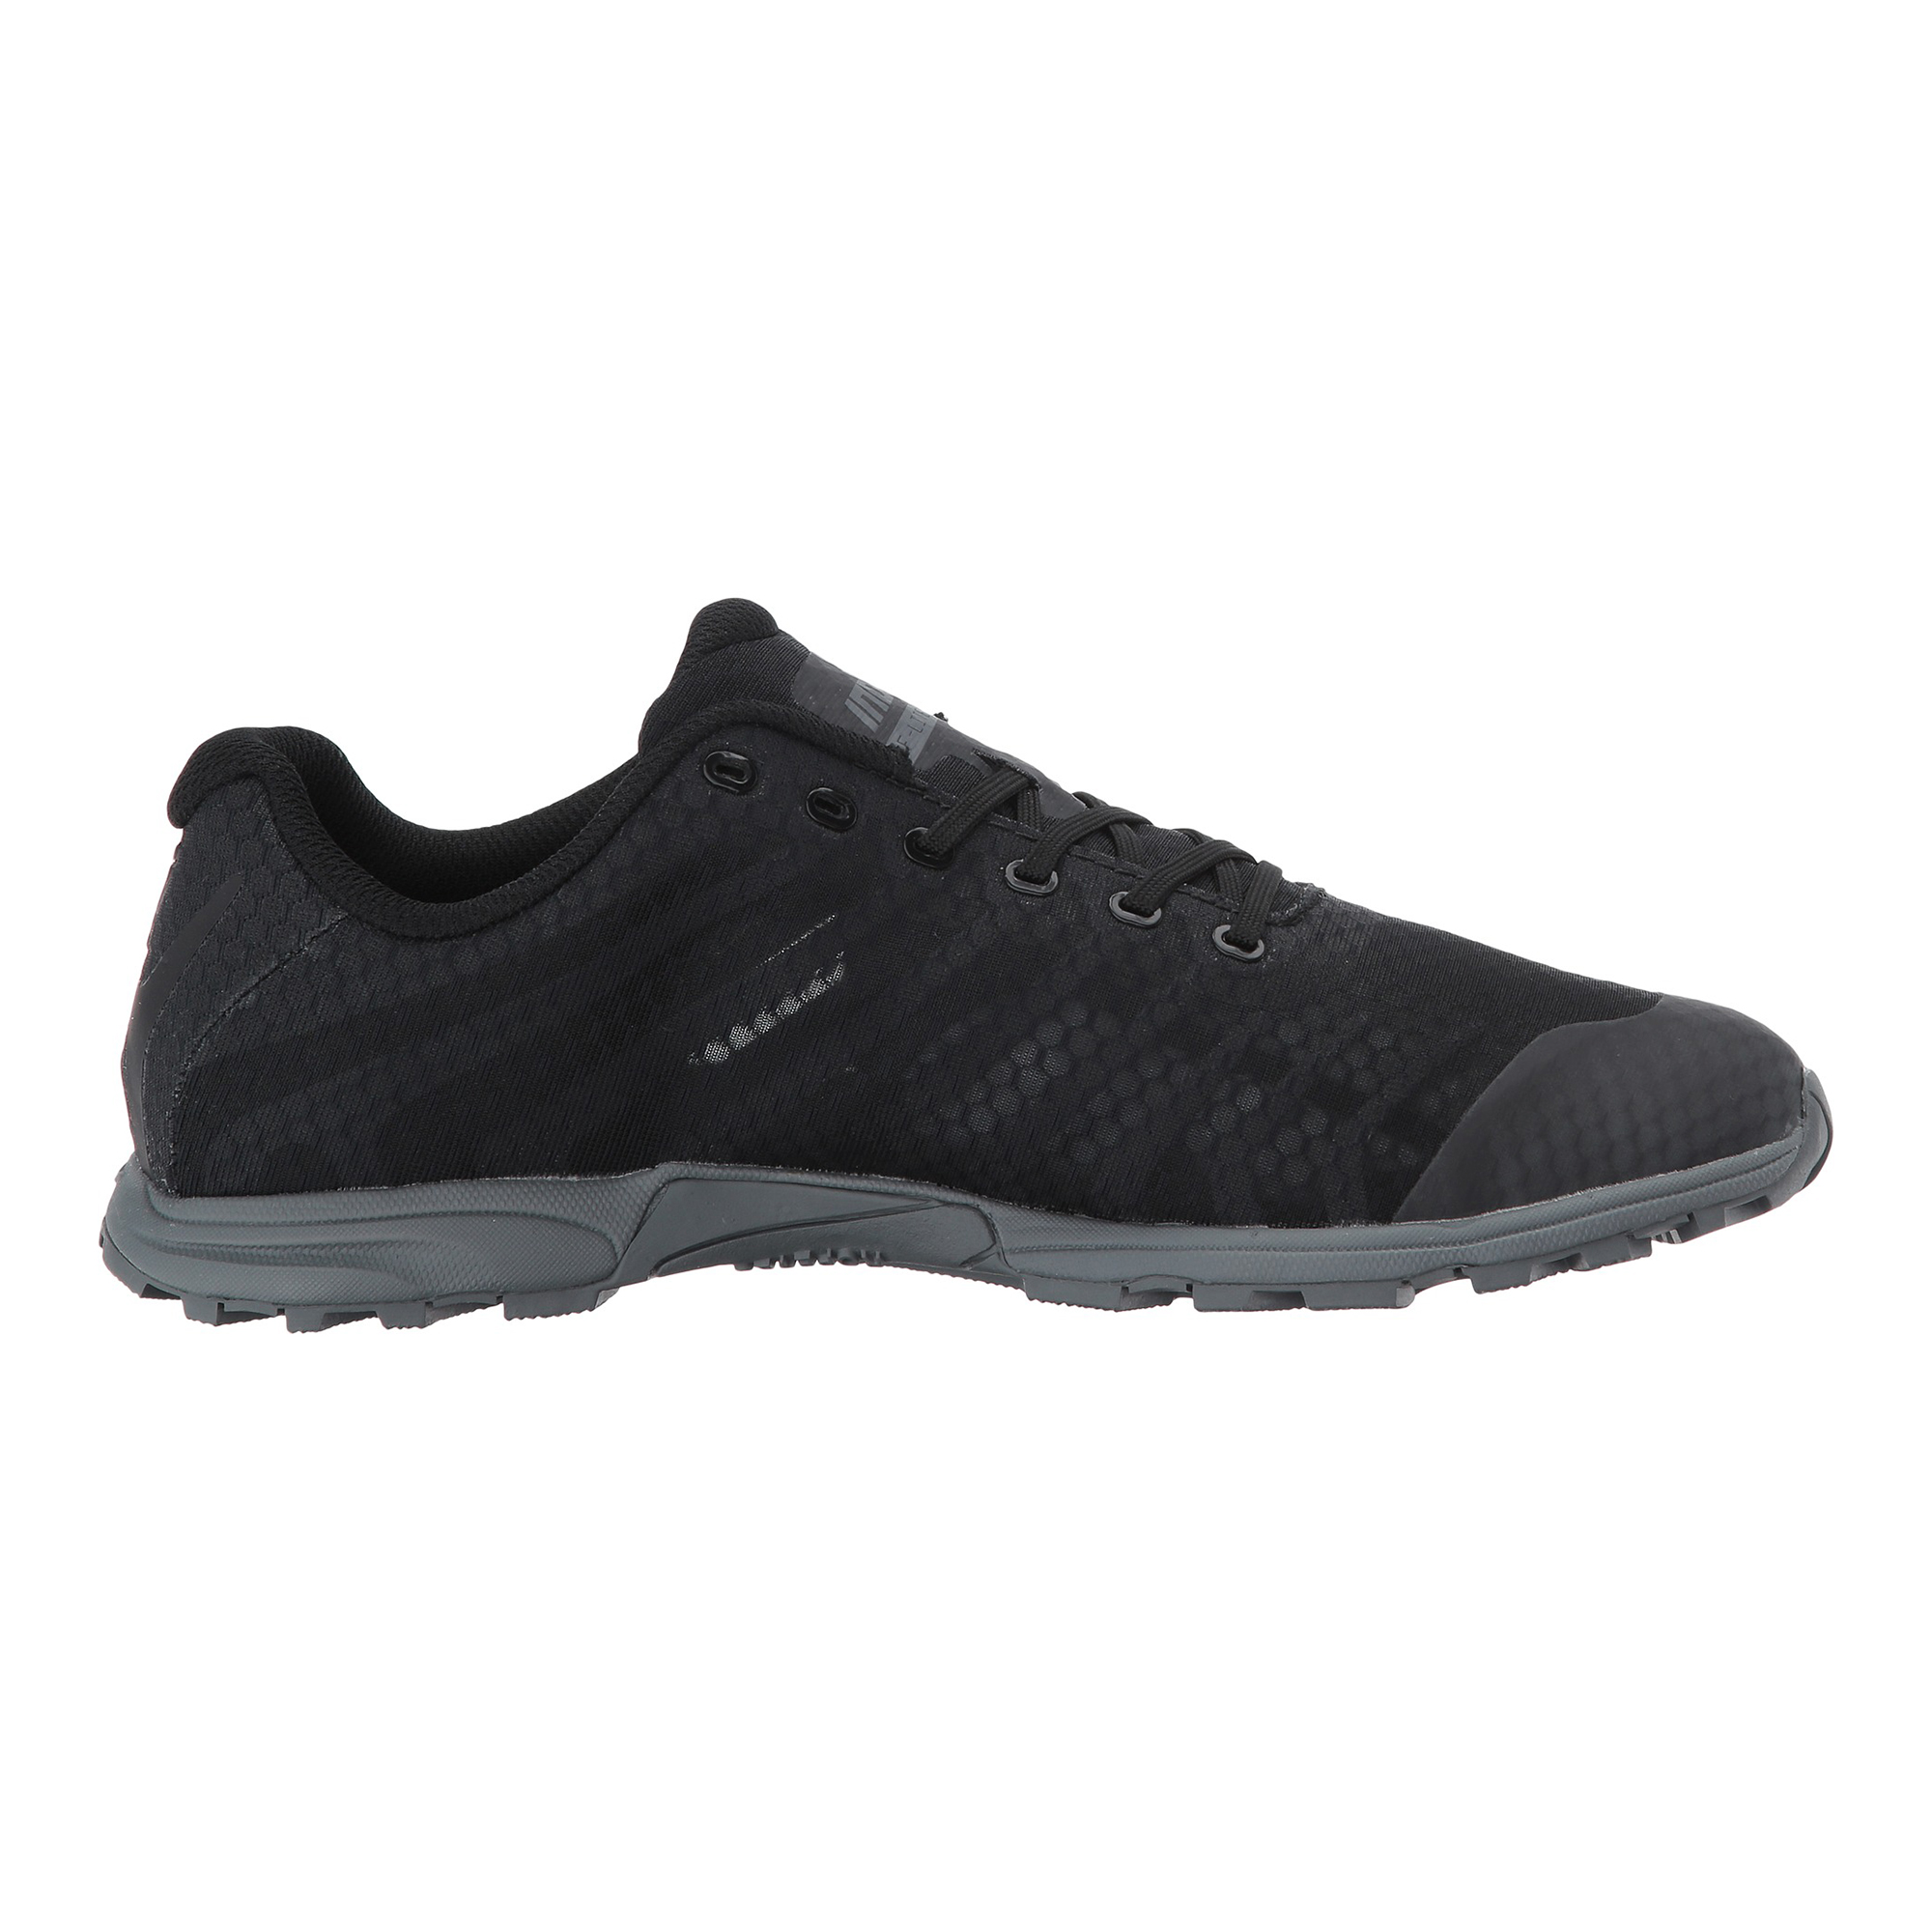 Inov-8 Women's F-Lite 195 v2 Training Shoe Black/Grey